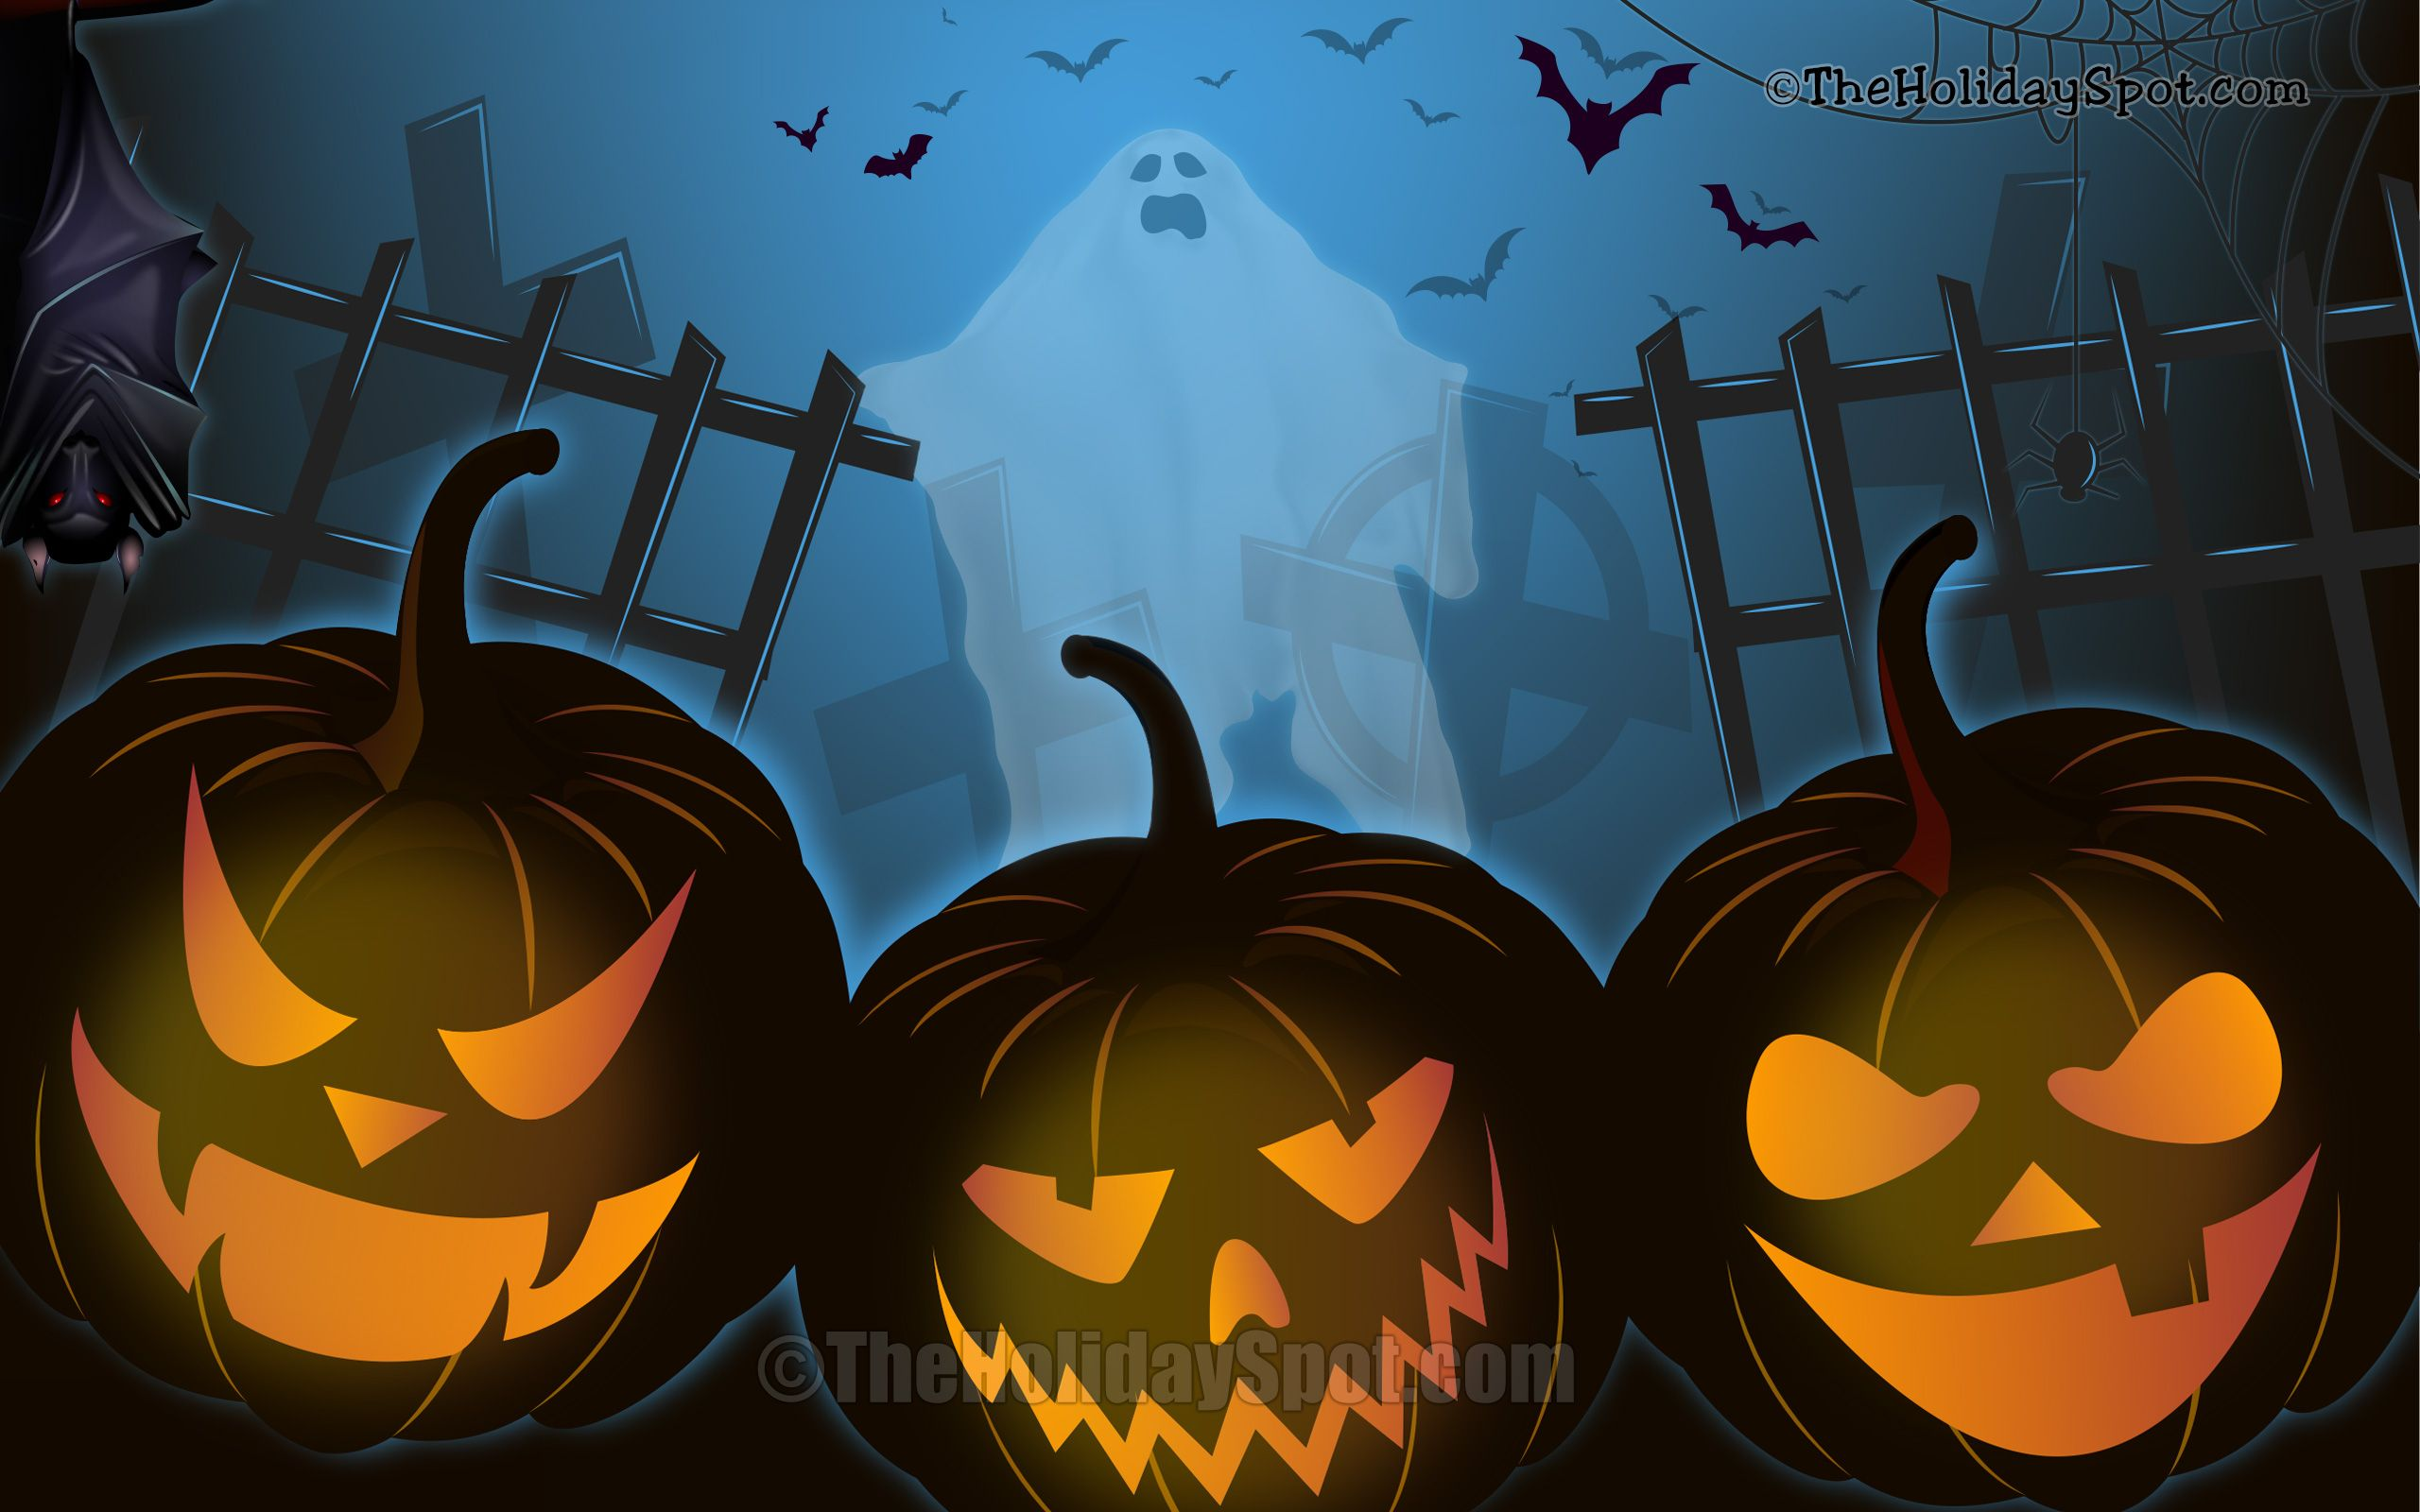 happy halloween wallpaper tag download hd wallpaperhd wallpapers 4k pinterest halloween night and wallpaper